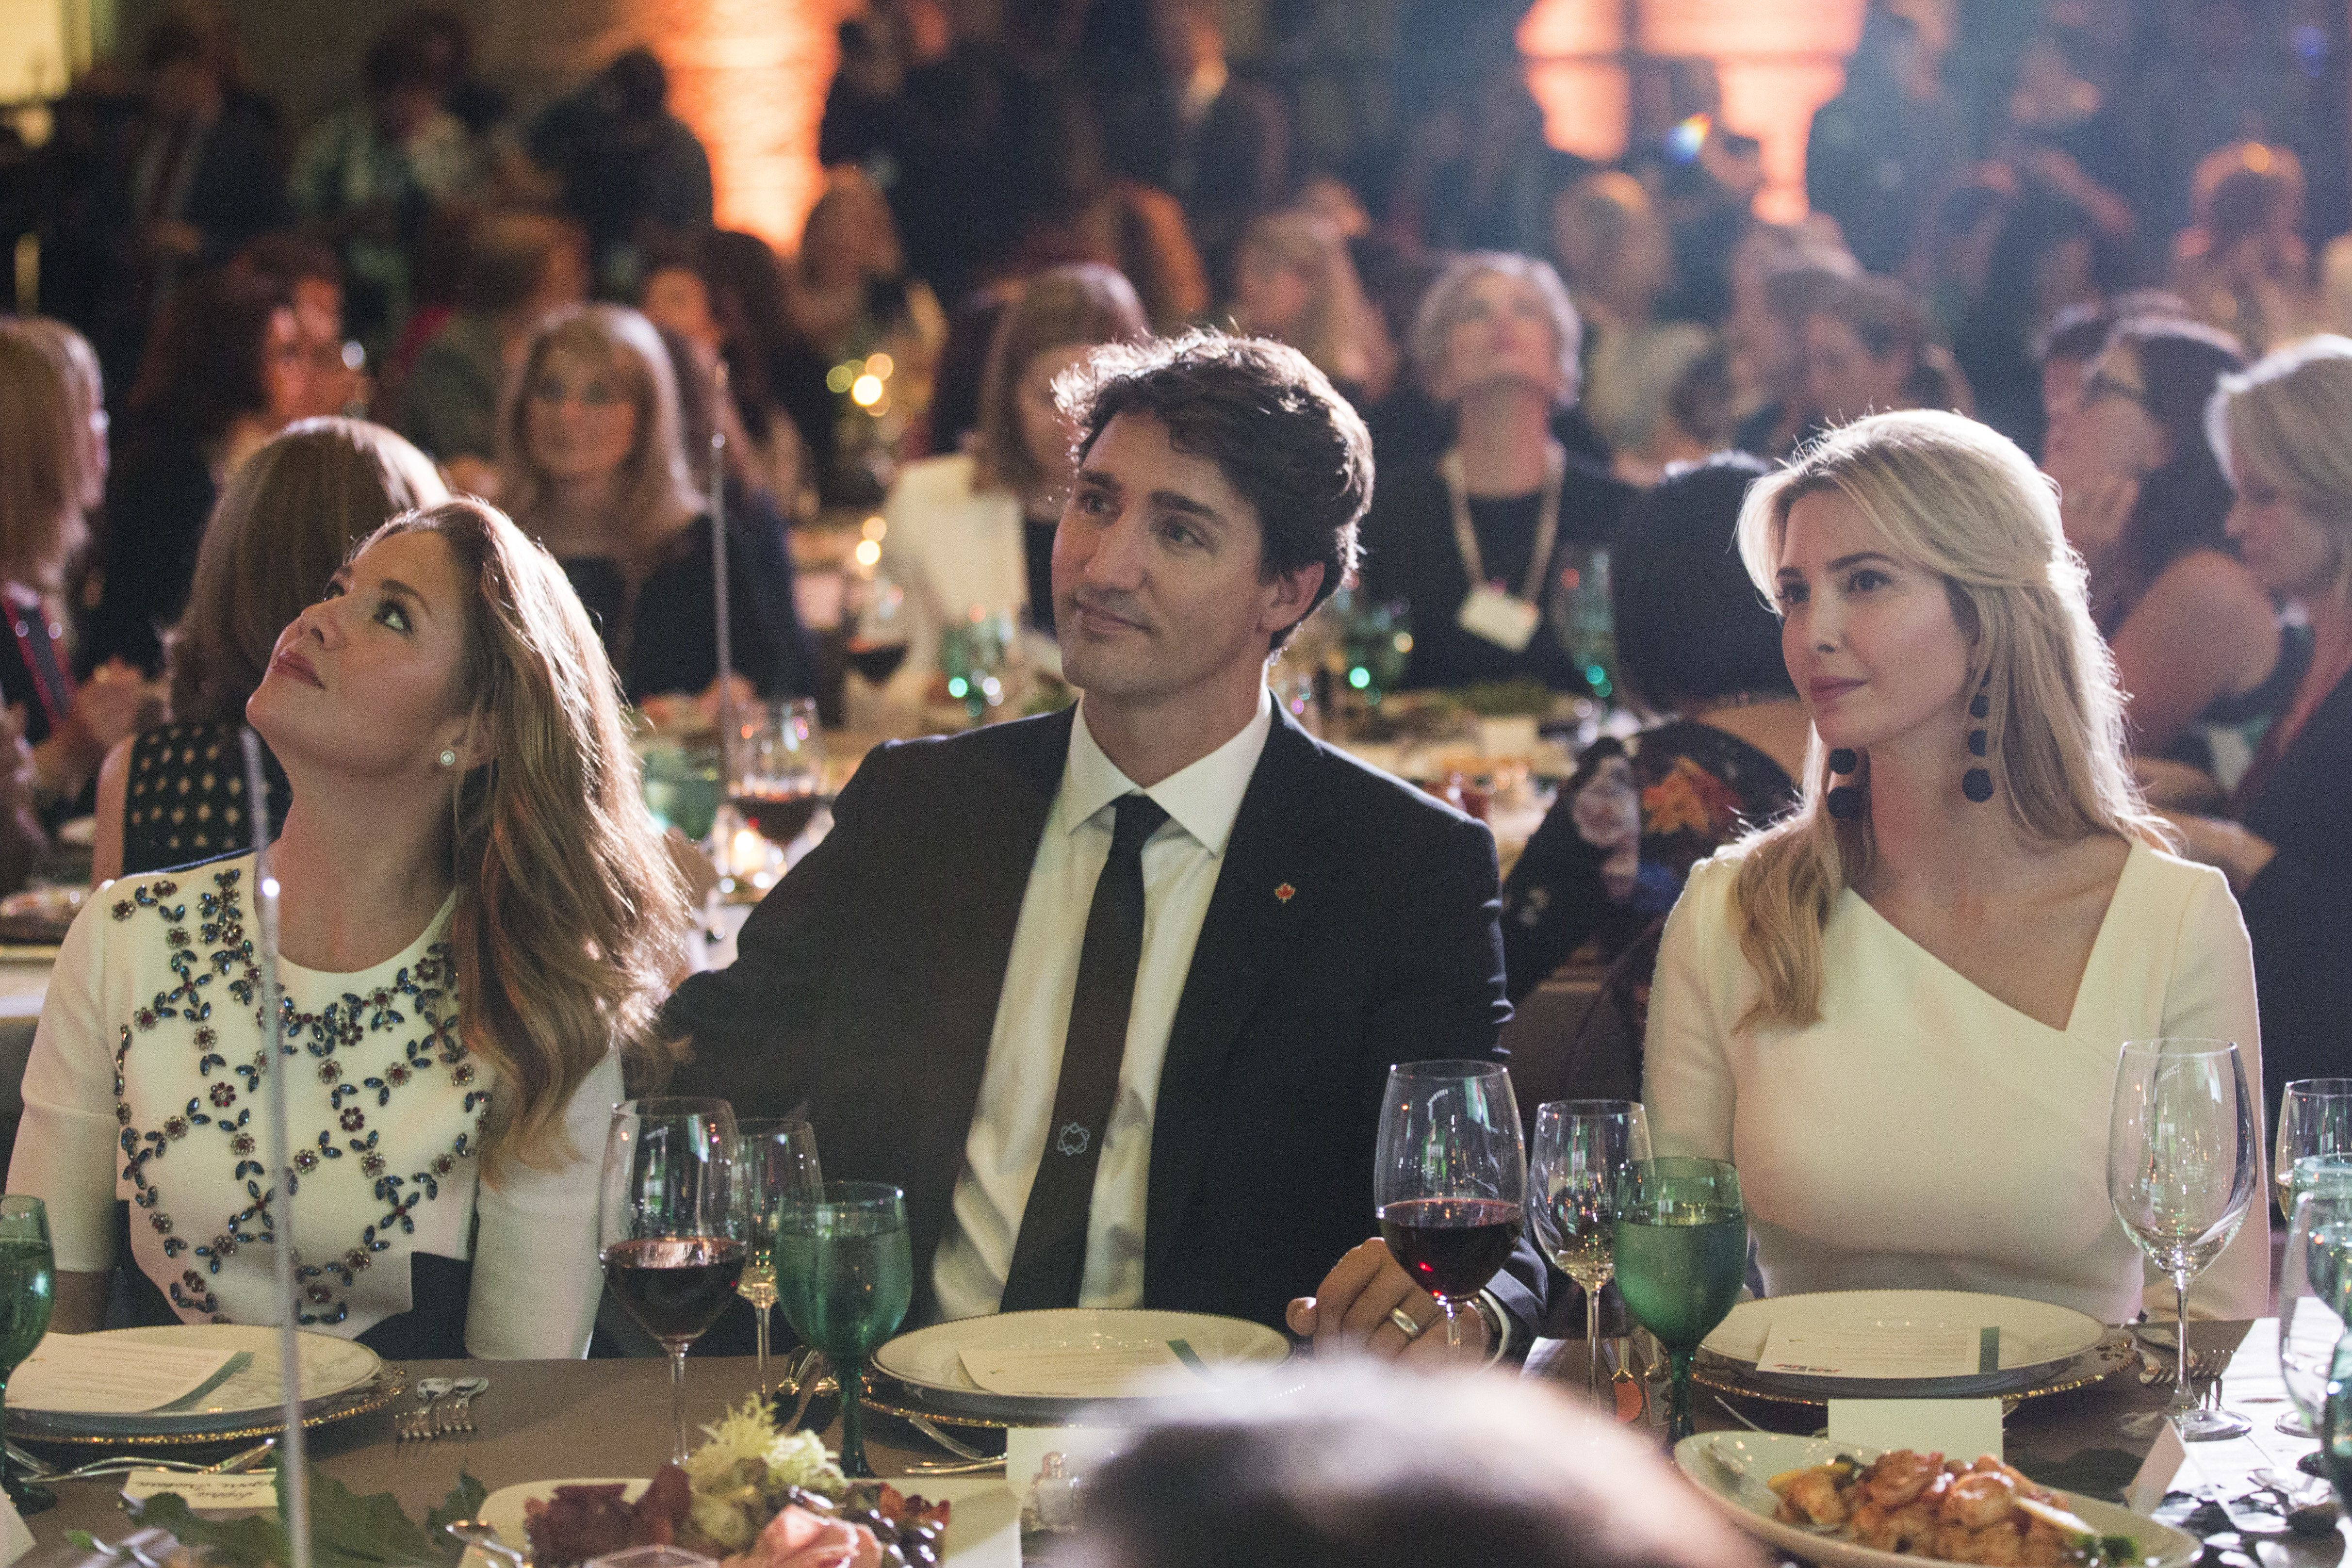 Sophie Trudeau, Canada's first lady, left, Justin Trudeau, Canada's prime minister, center, and Ivanka Trump listen during the Fortune's Most Powerful Women conference in Washington, D.C., U.S., on Tuesday, Oct. 10, 2017.